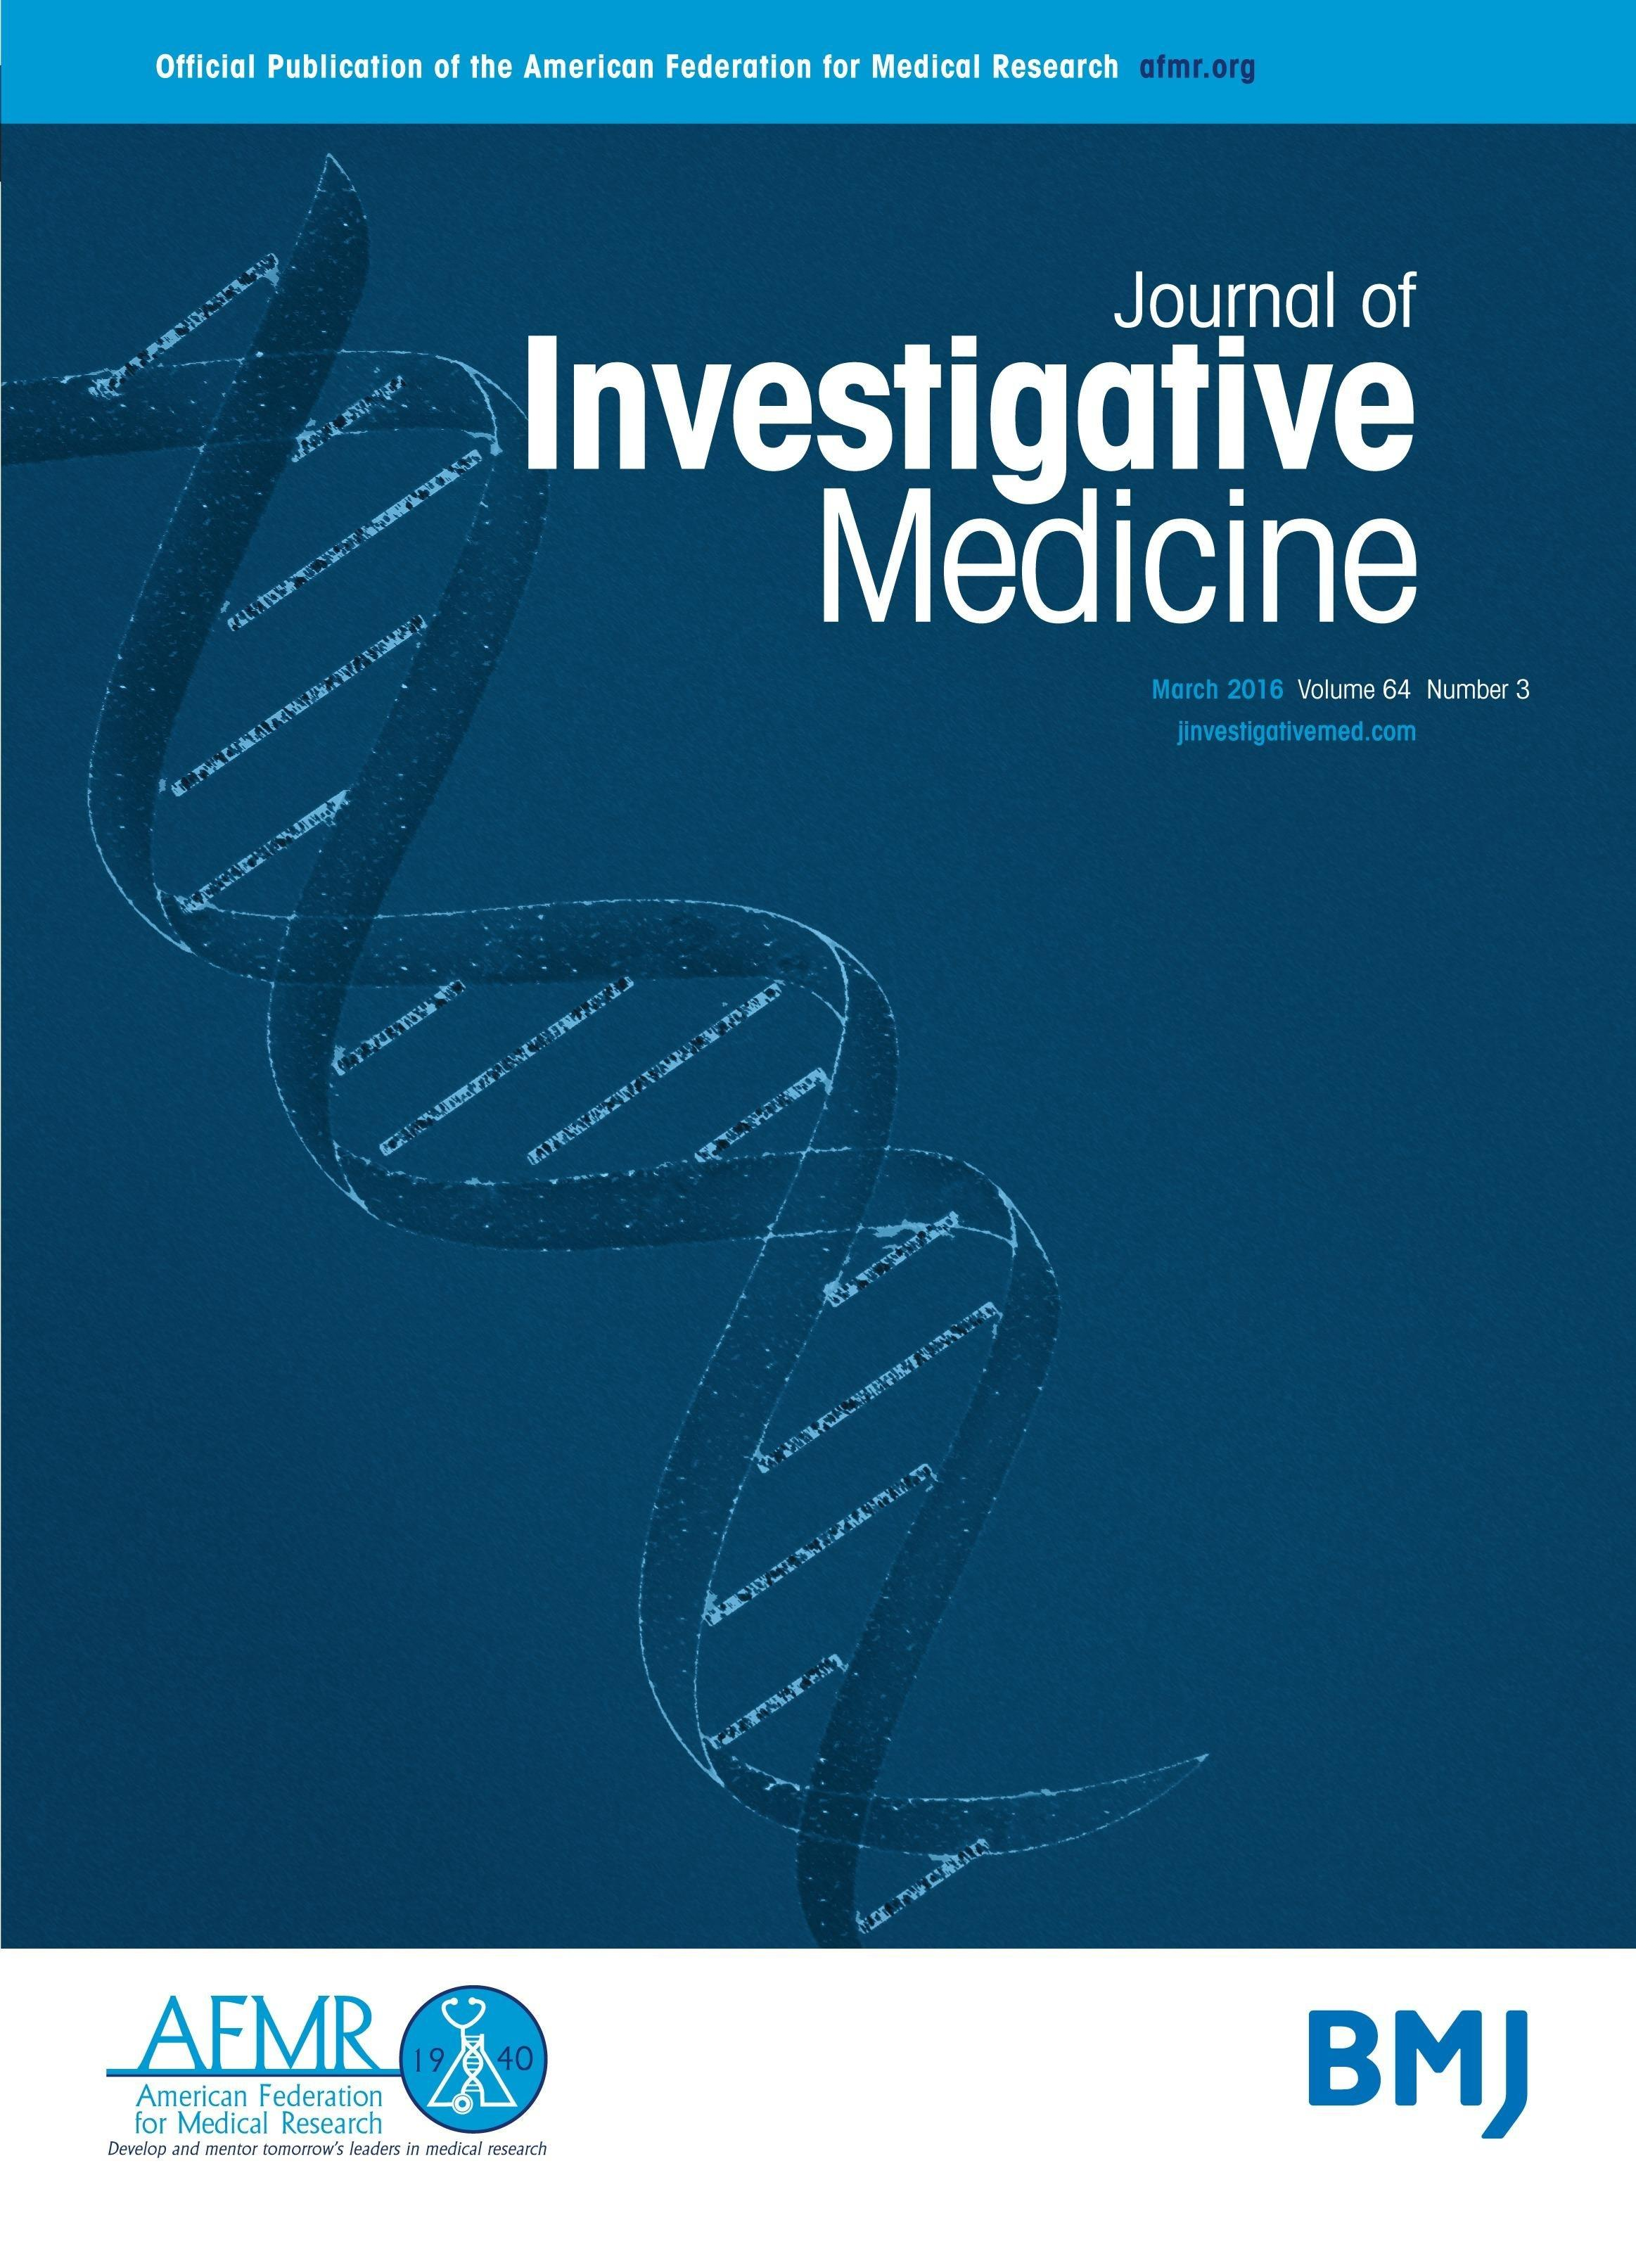 19: Resveratrol Improves Insulin Resistance With Anti-inflammatory And Browning Effects In Adipose Tissue Of Overweight Humans | Journal Of Investigative Medicine